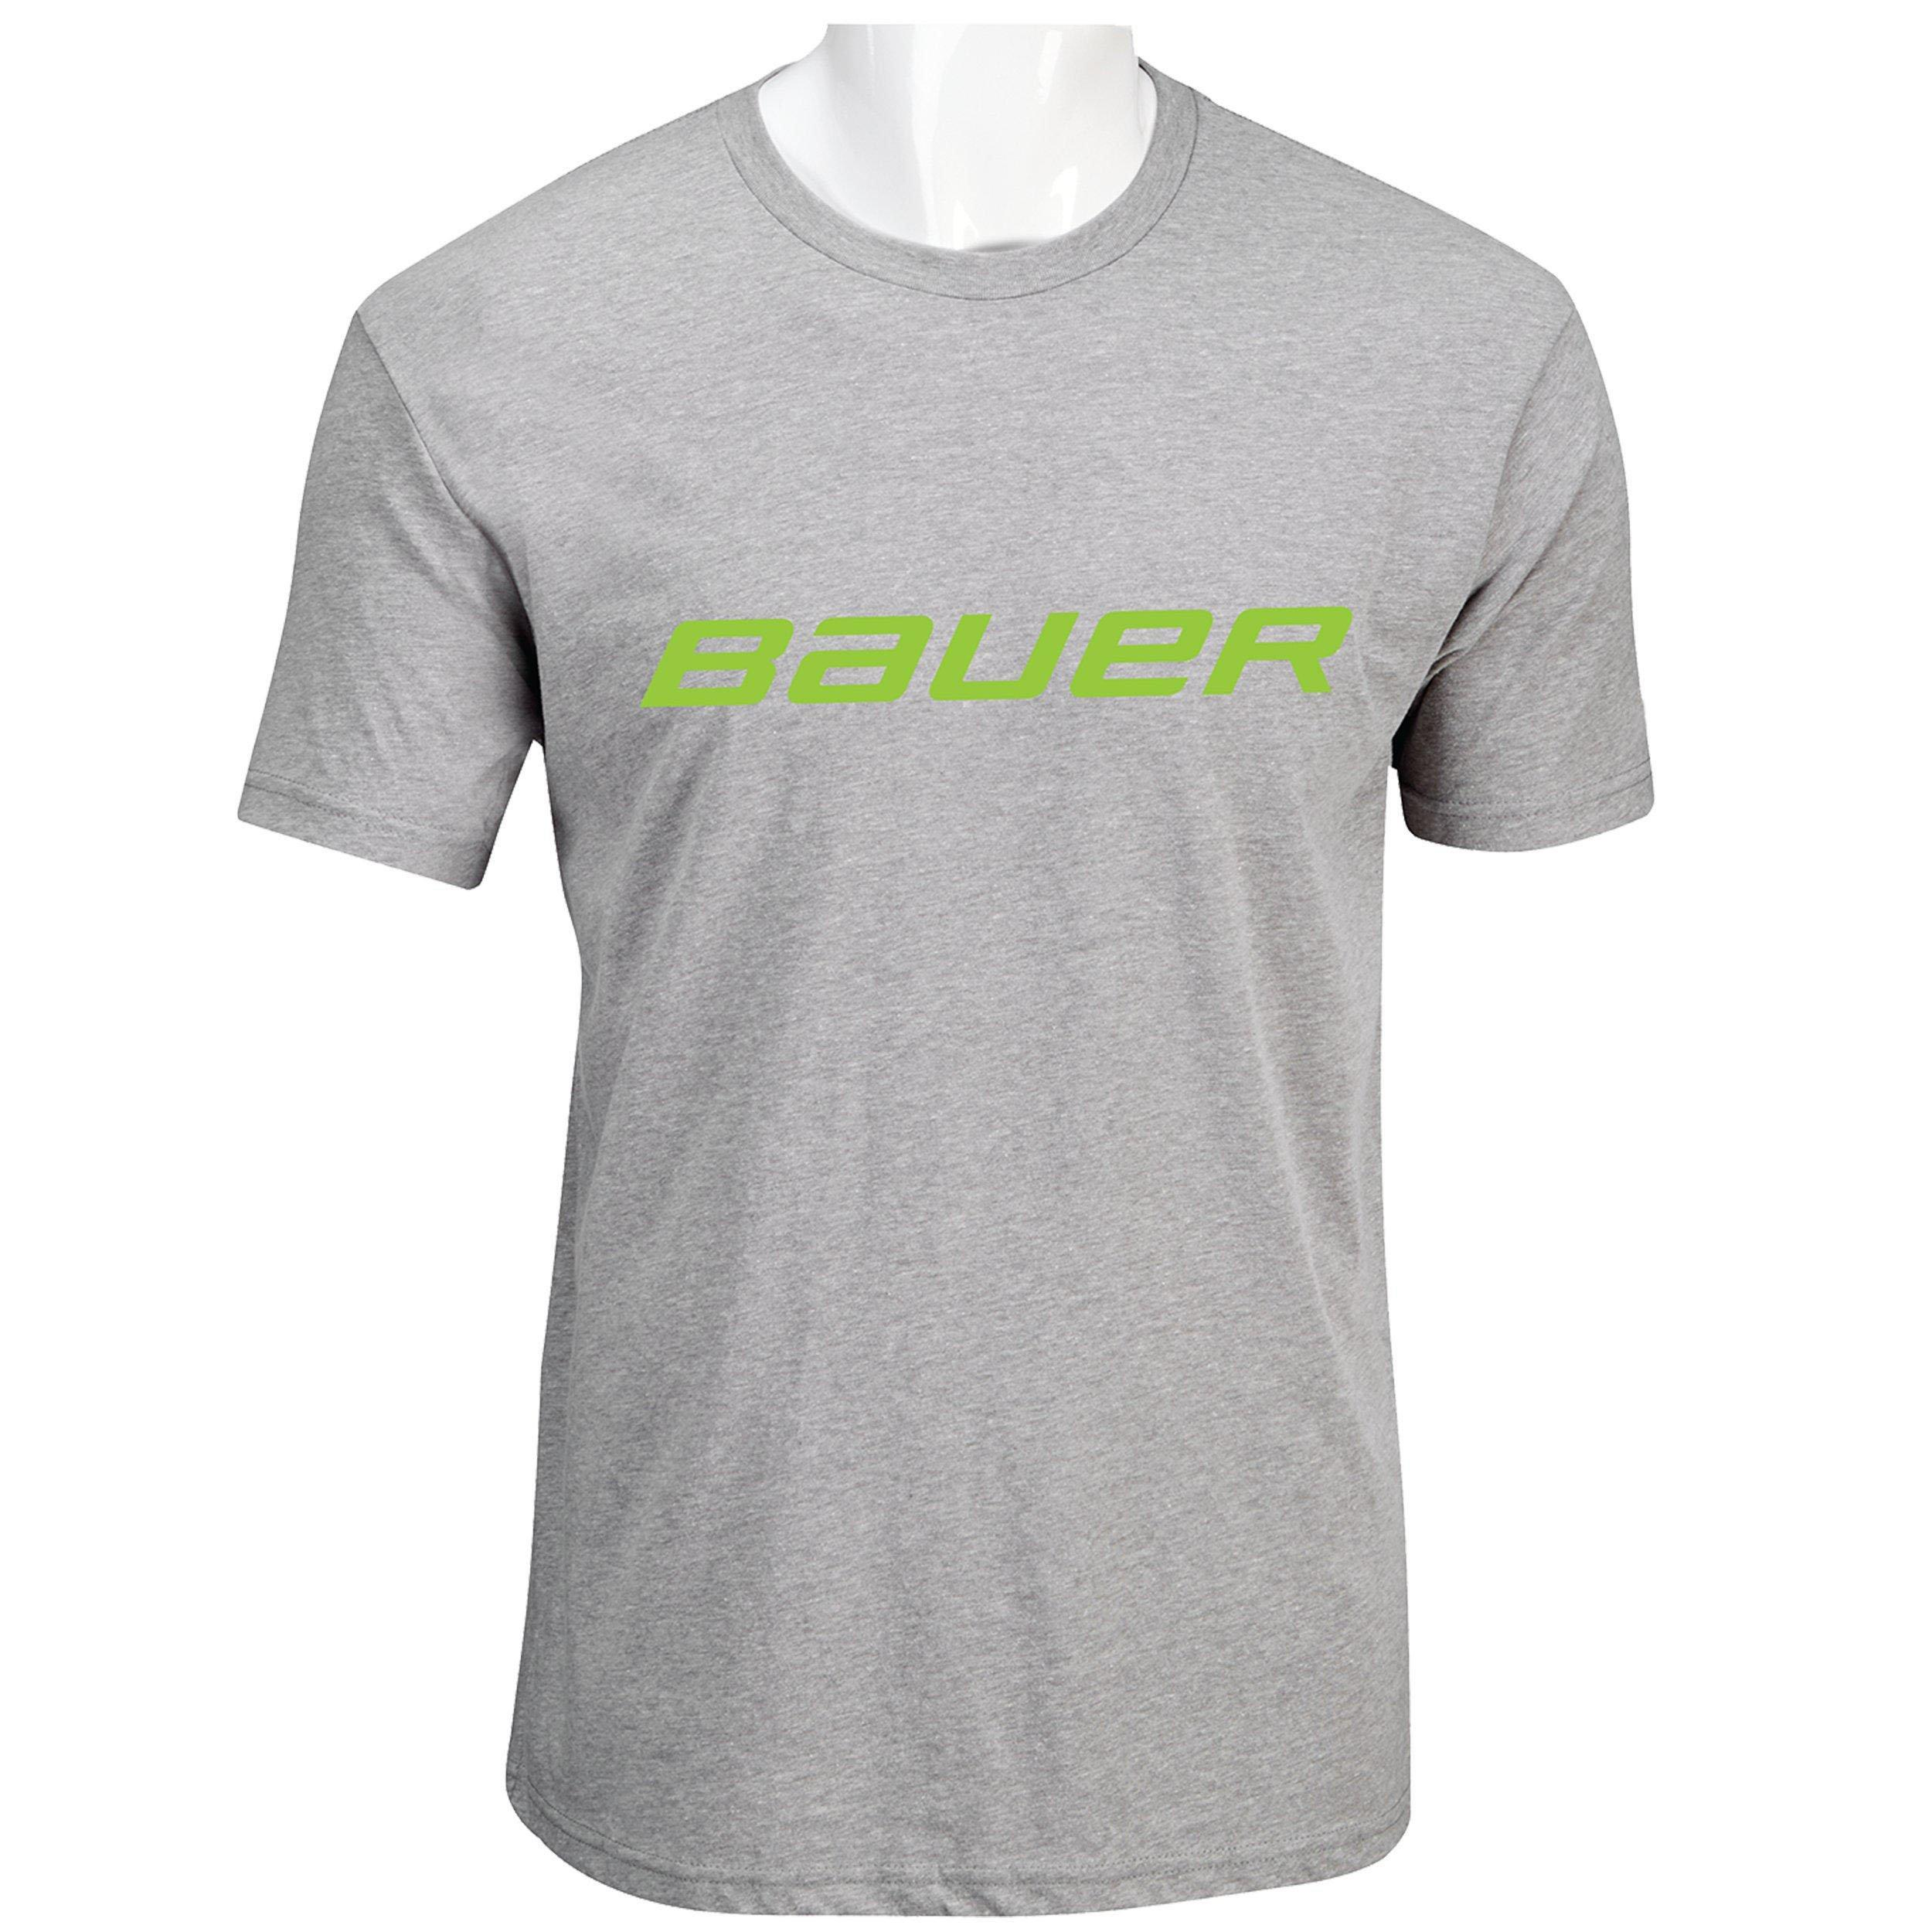 BAUER Core Short Sleeve Tee Color Pop Youth,,medium